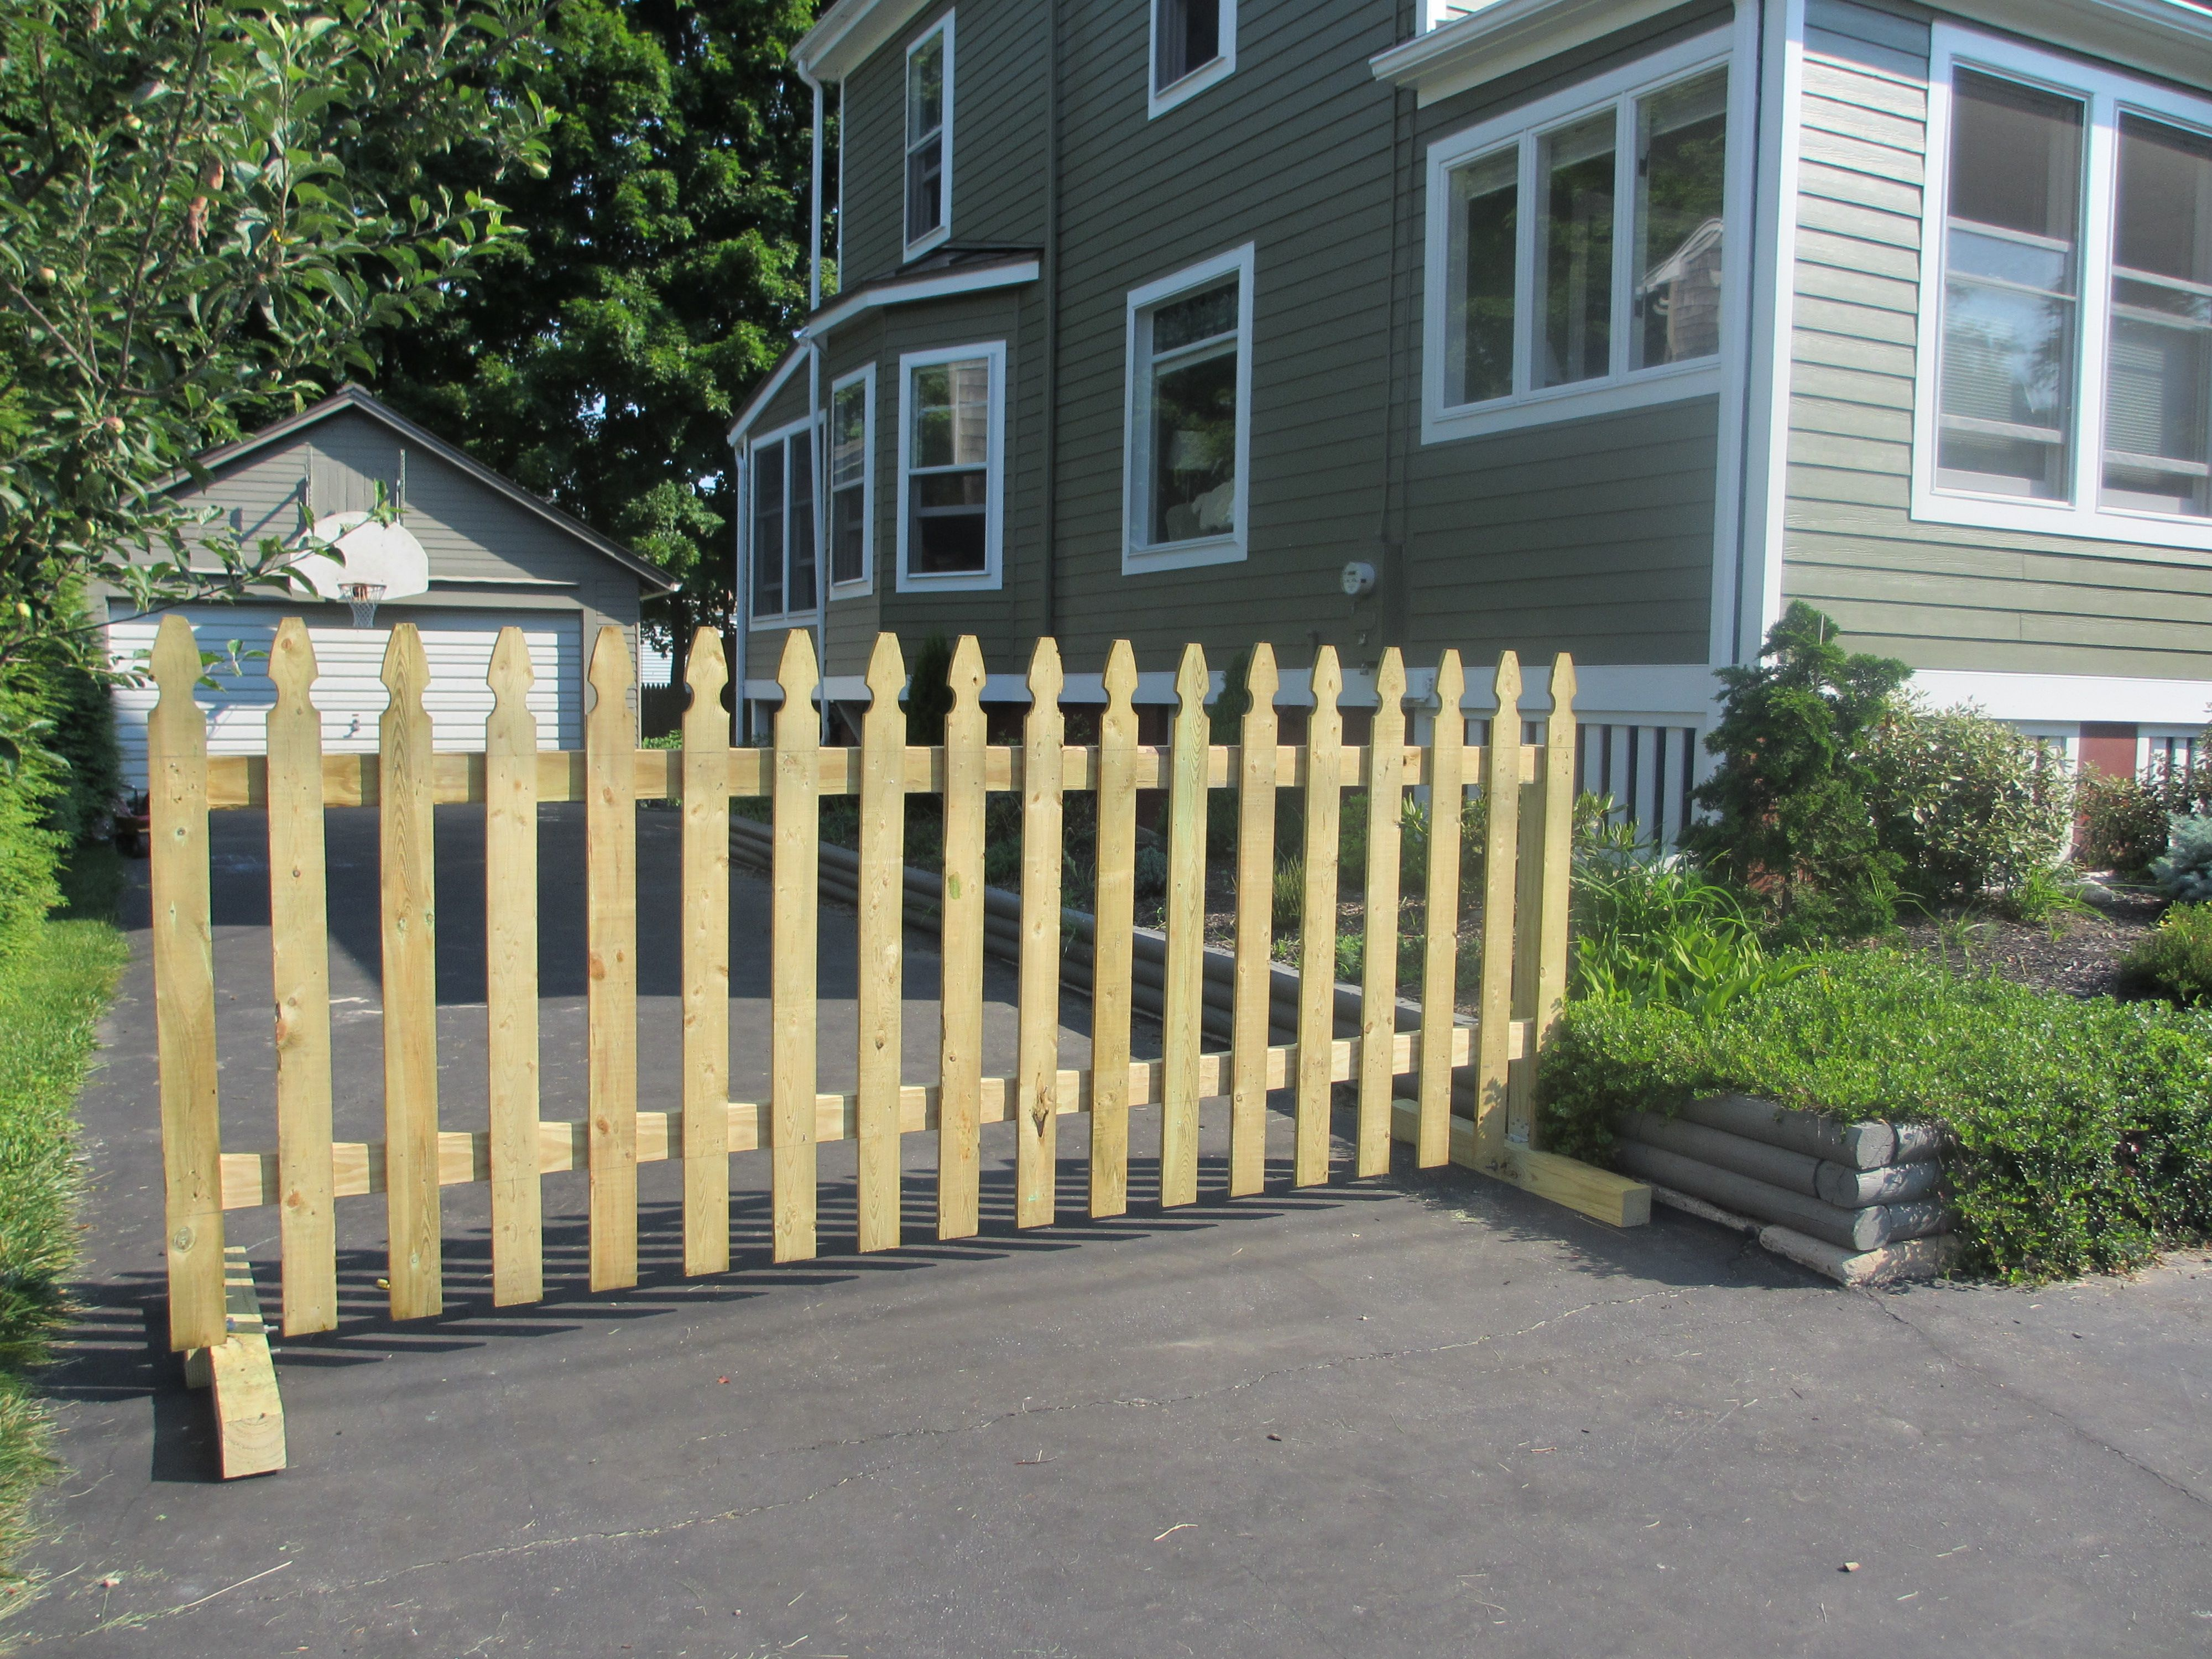 13 Diy Dog Gate Ideas: Sturdy Gate At The End Of Your Driveway Keeps Your Kids In